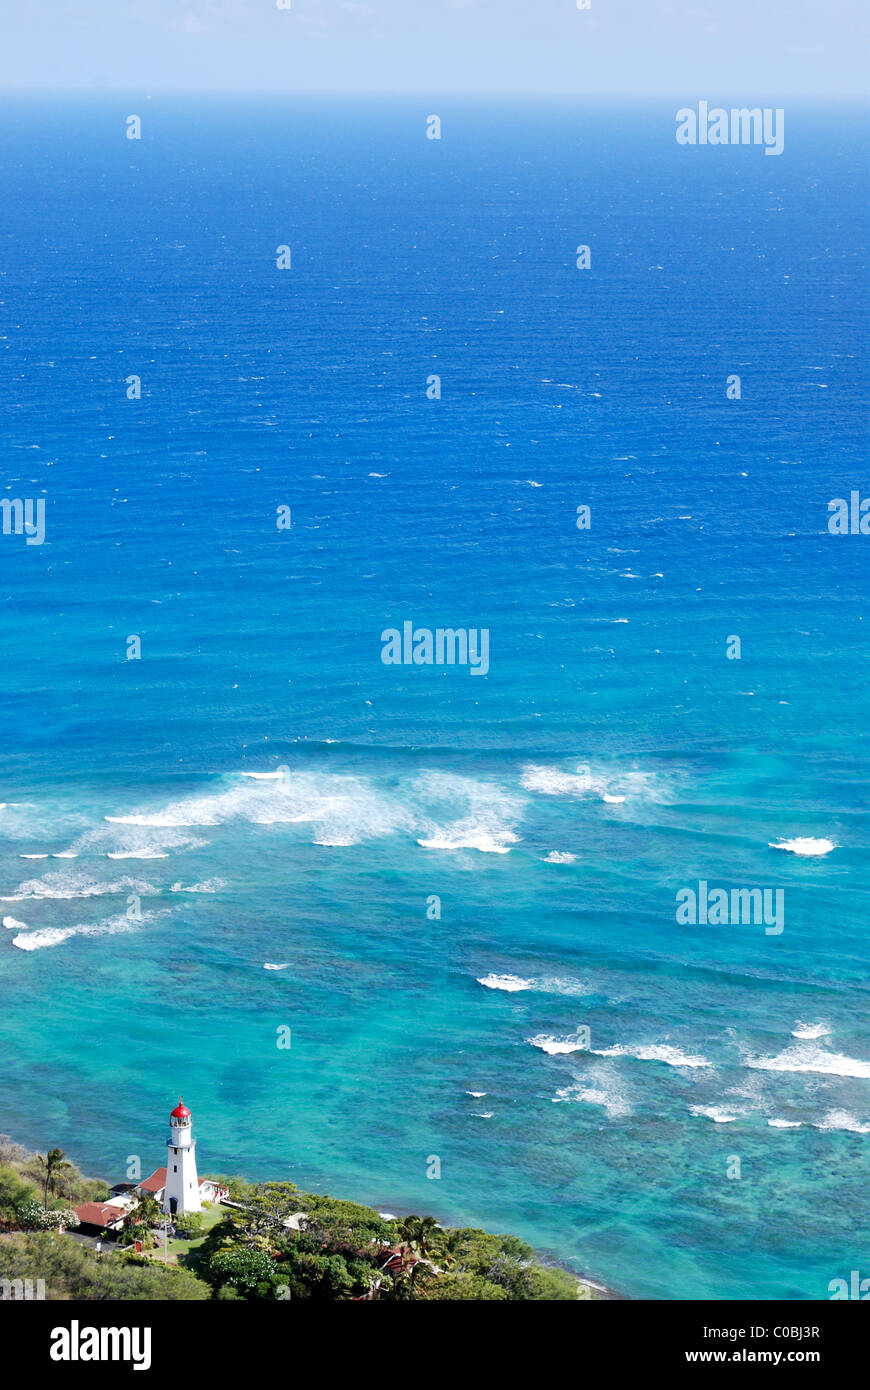 Diamond Head Lighthouse looking out onto vast blue ocean. Windward Coast of Oahu Hawaii shot from diamond head crater. - Stock Image